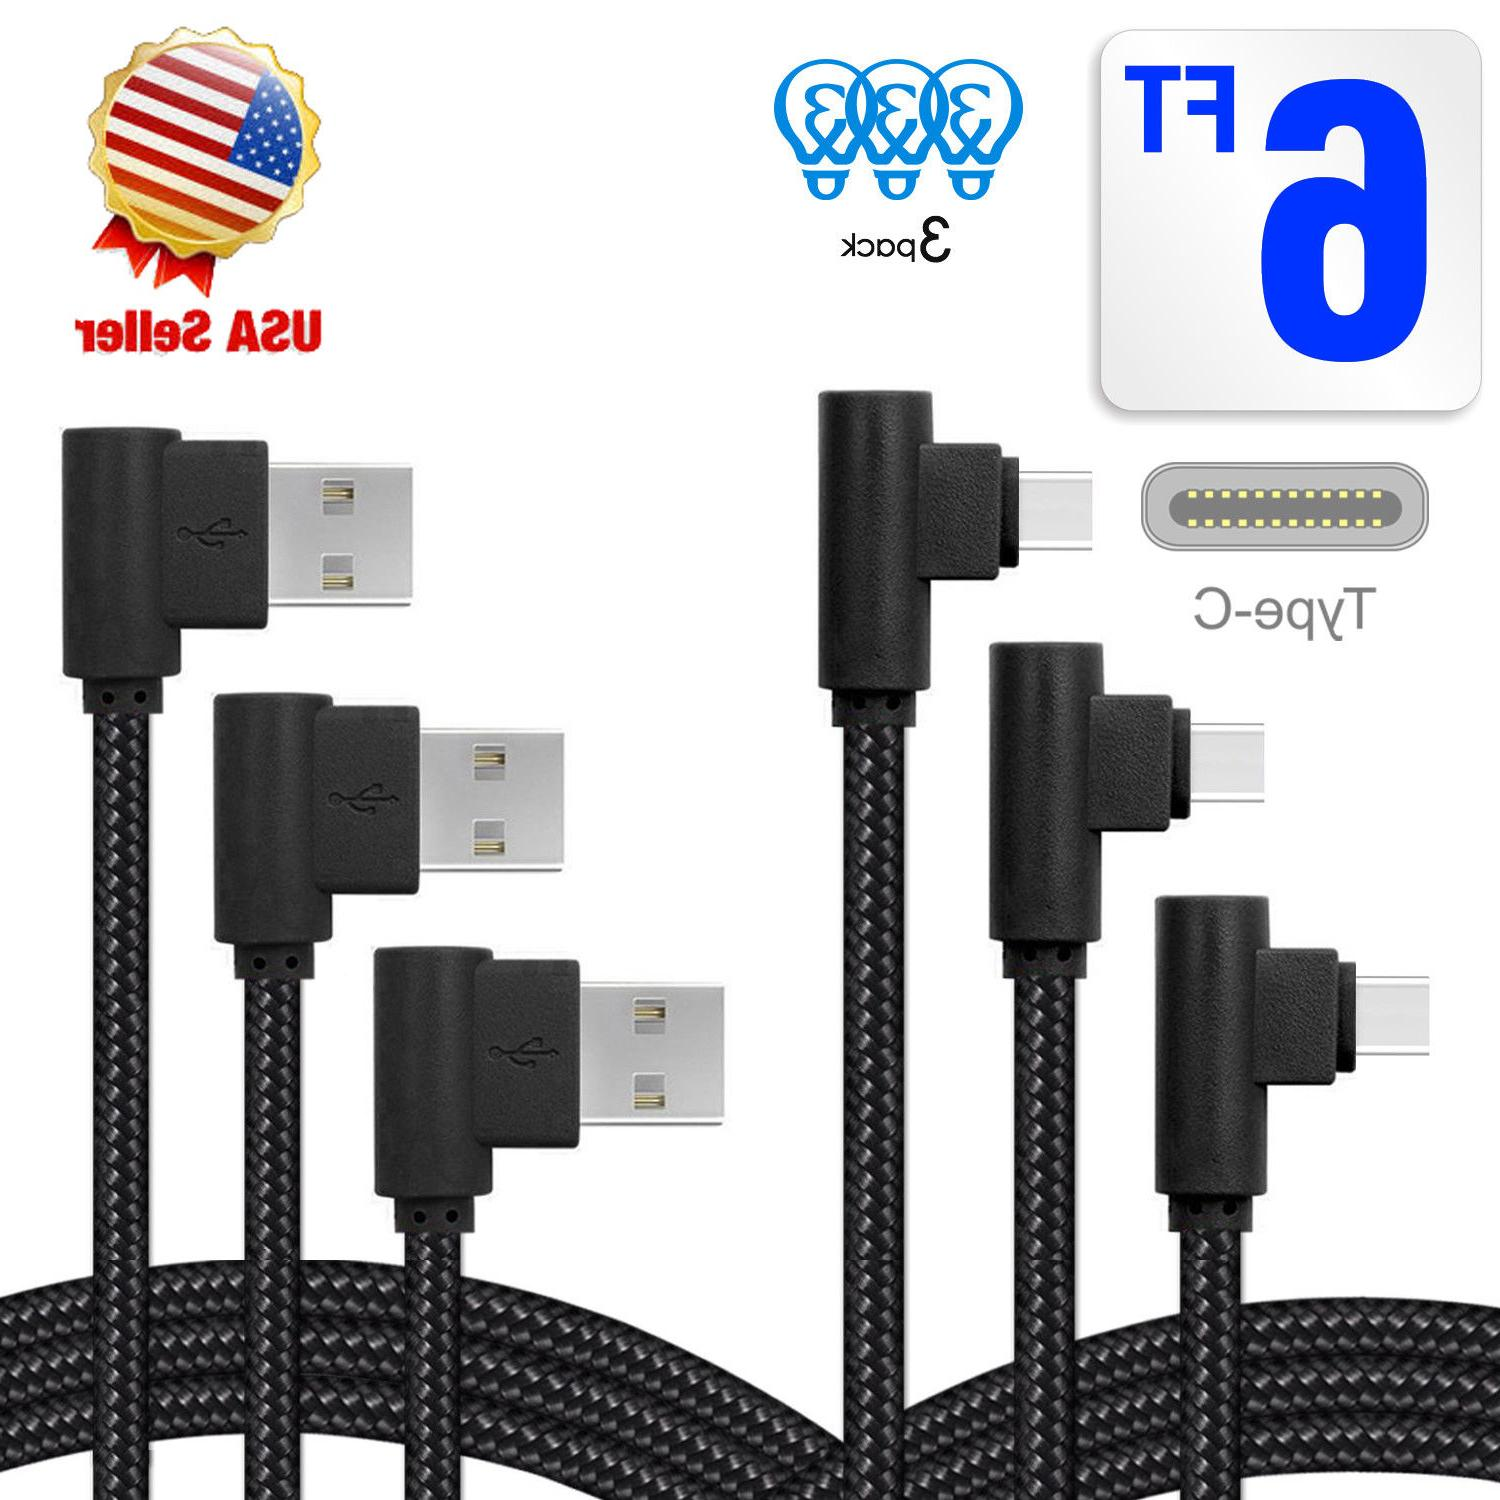 3 Angle USB Degree USB C Charger Cable